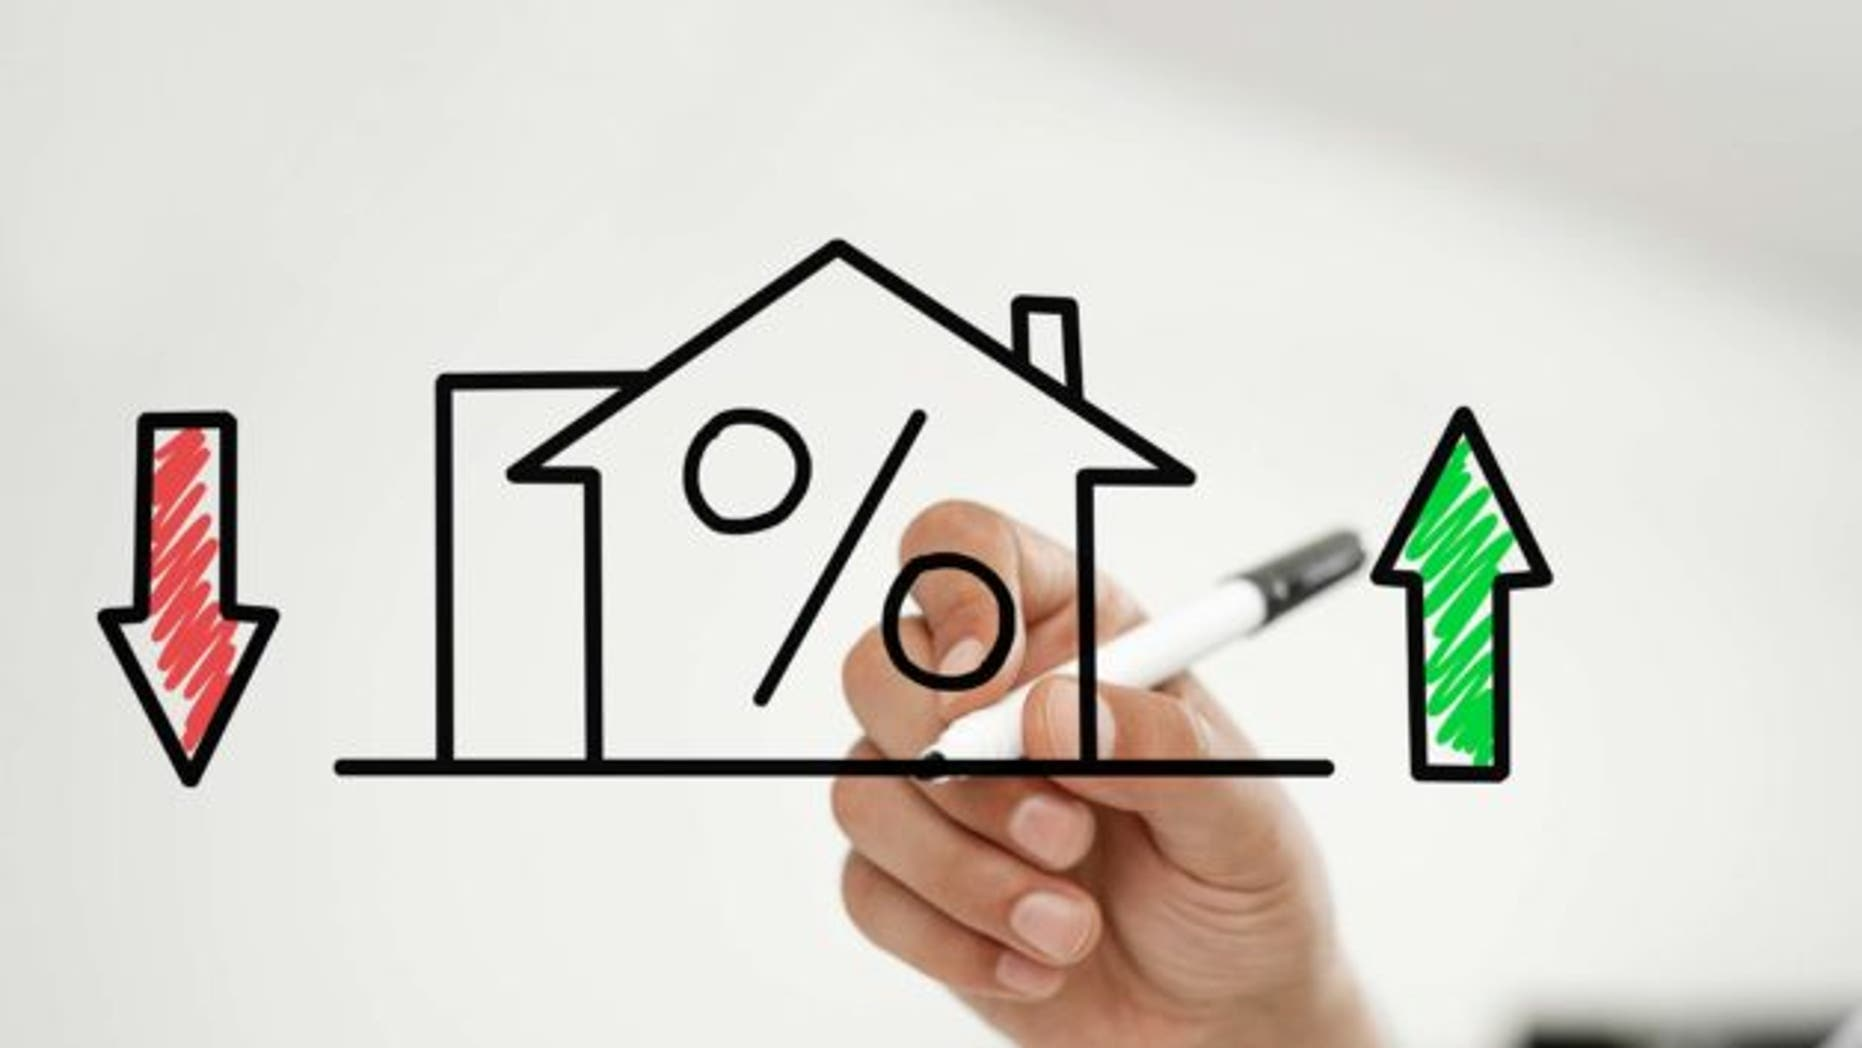 mortgage-rate-up-down